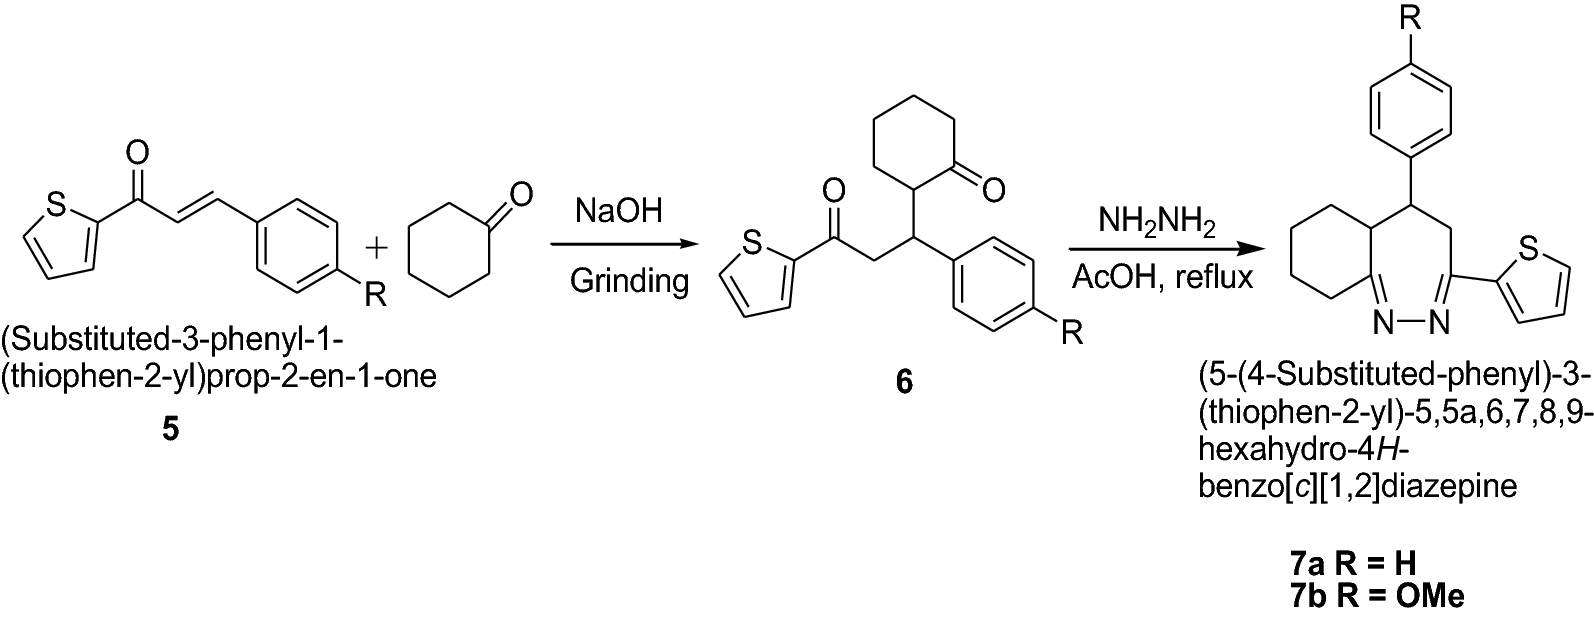 Therapeutic importance of synthetic thiophene | SpringerLink